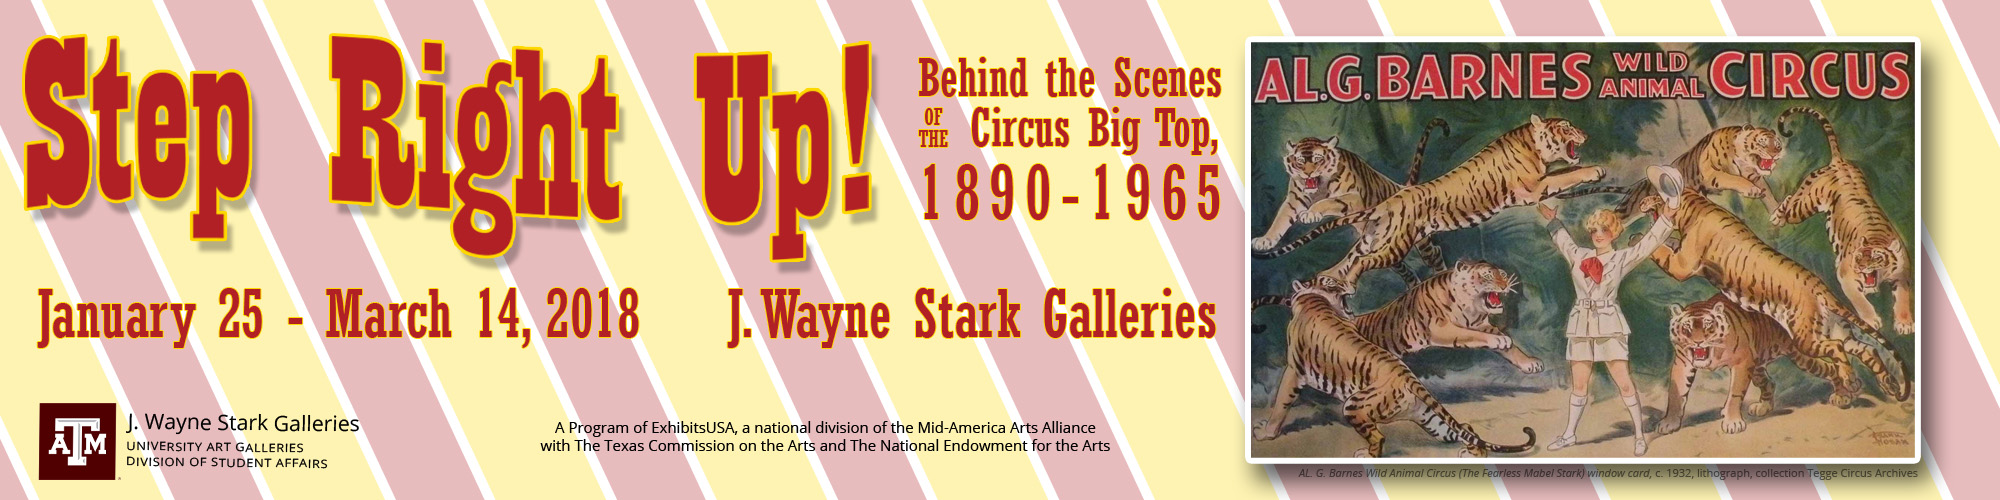 Step Right Up! Behind the Scenes of the Circus Big Top, 1890-1965 will be on display at the J. Wayne Stark Galleries at Texas A&M University from January 25 through March 14, 2018.